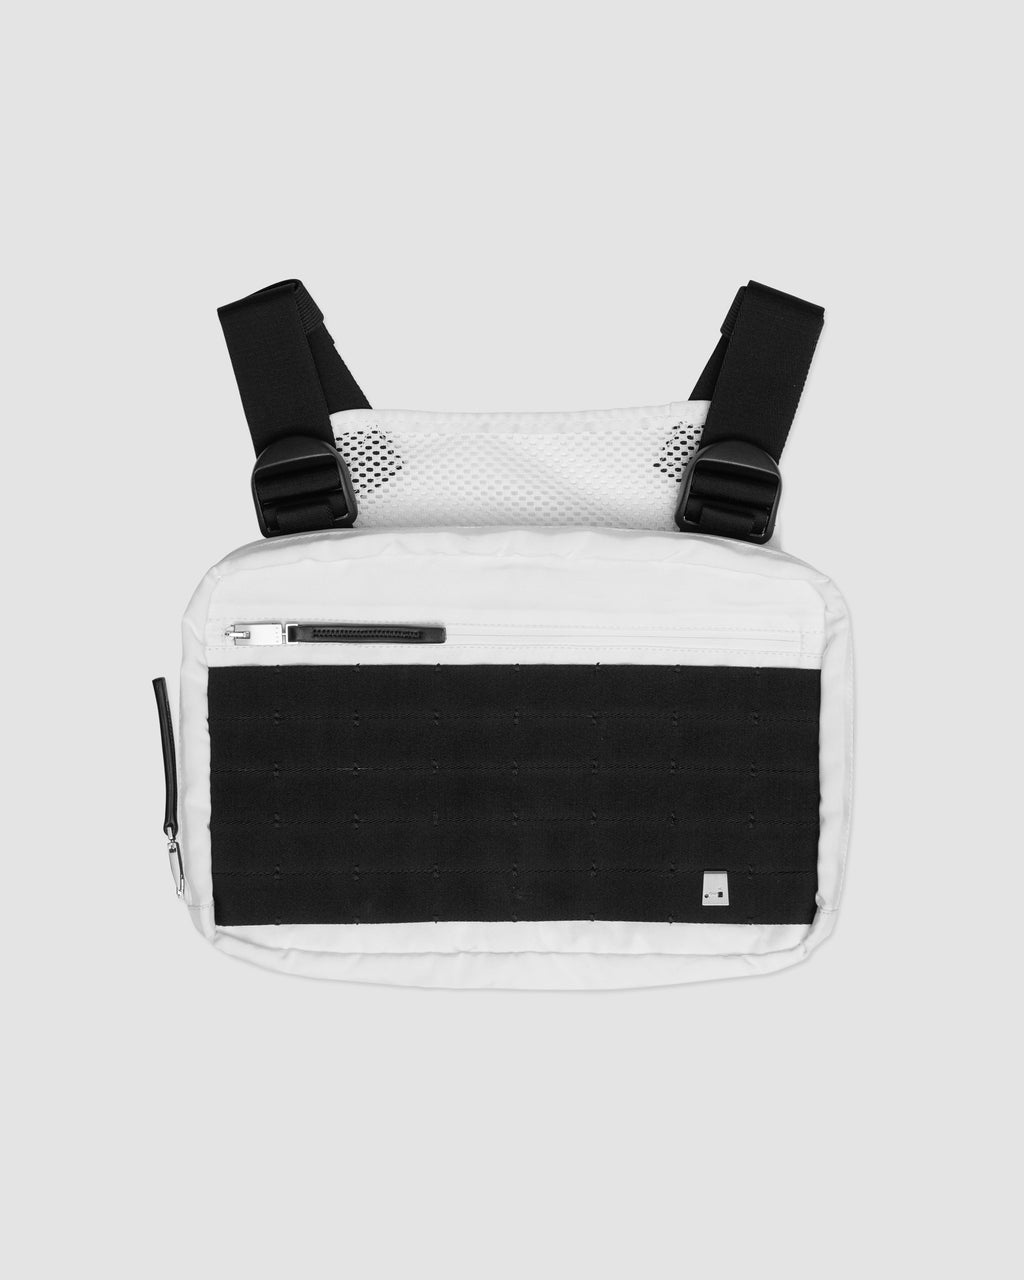 CHEST RIG - Pre Order